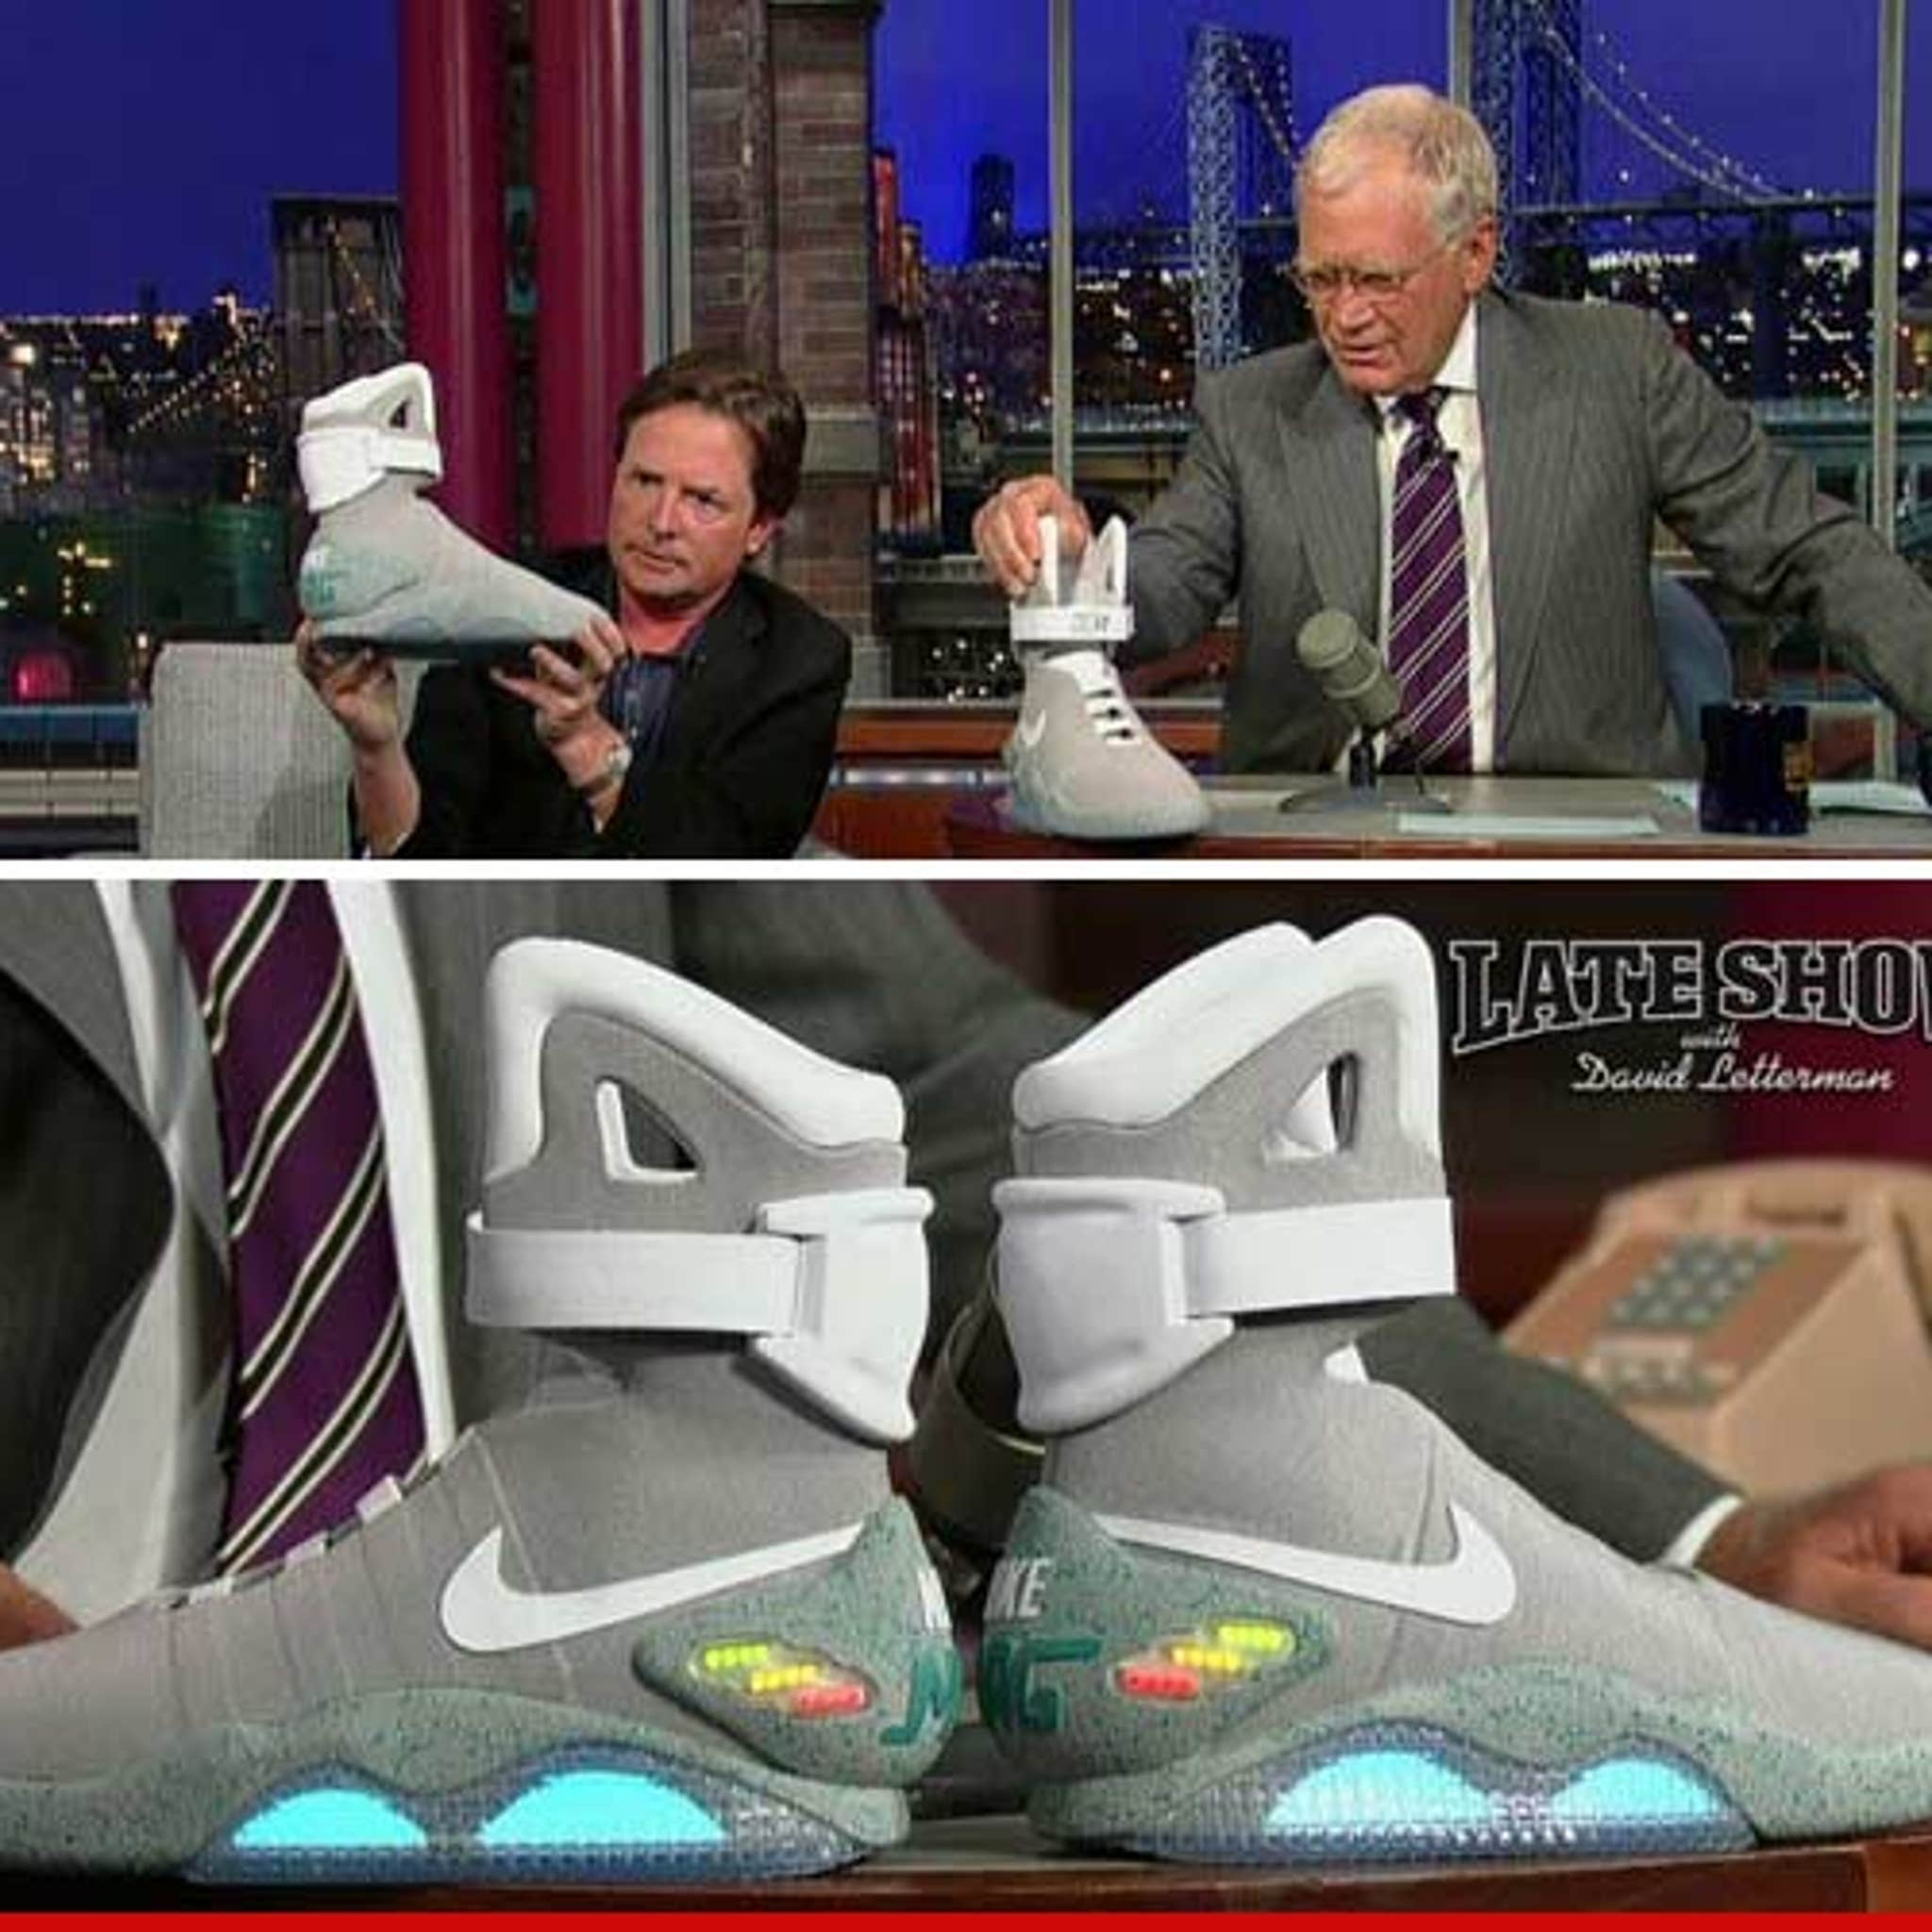 re Selling Marty McFly's FUTURE SHOES